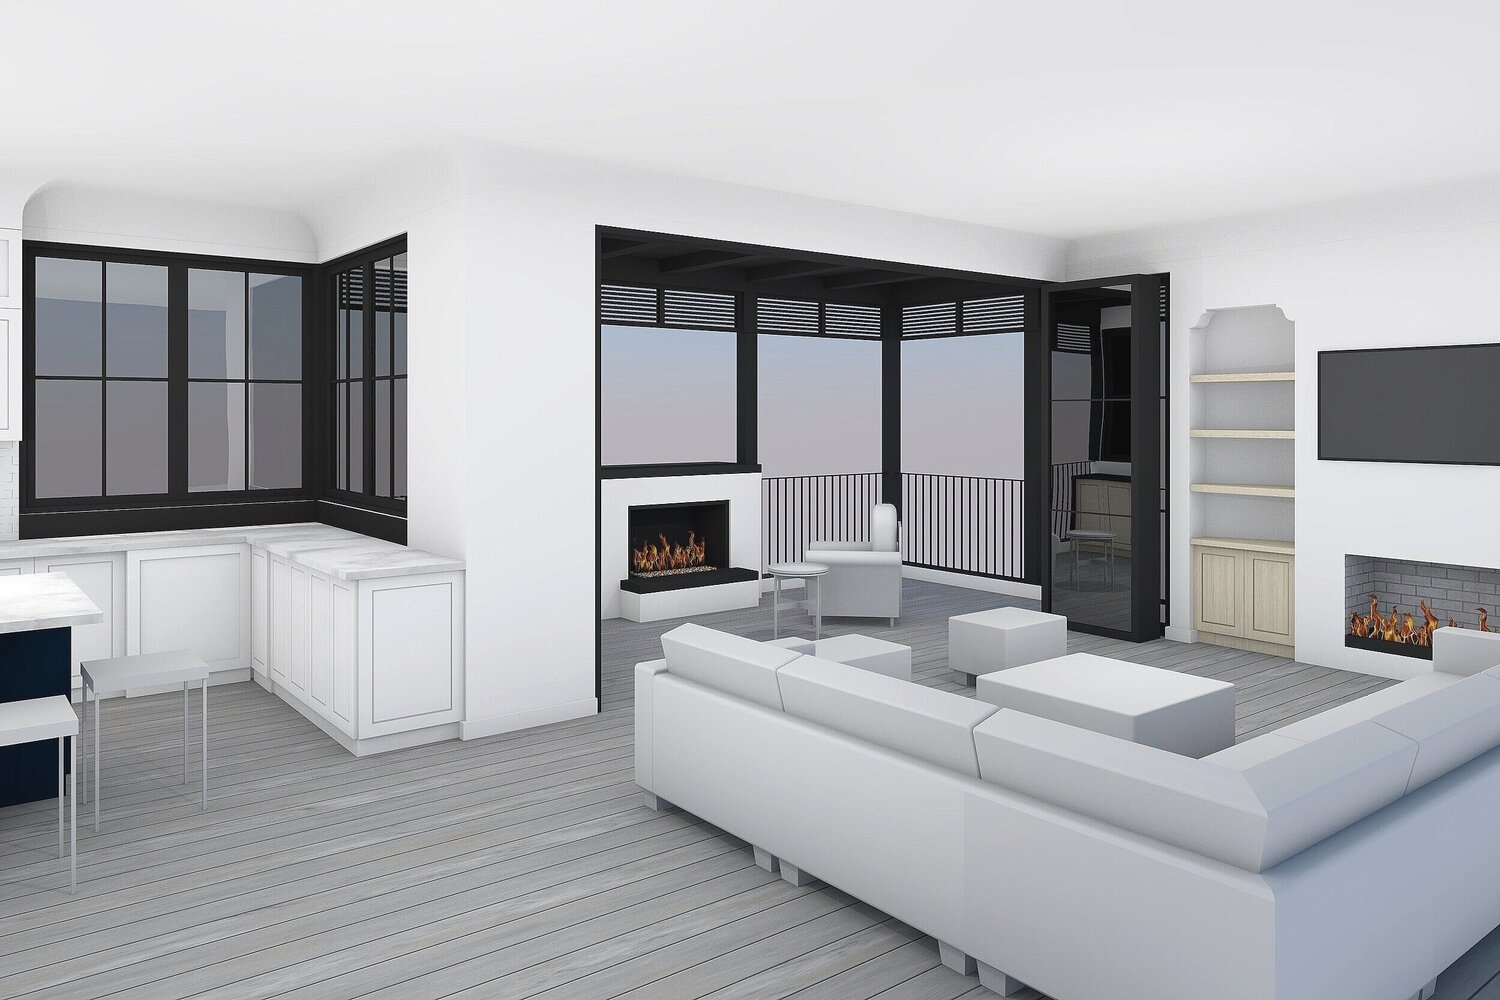 132 21st Place Rendering